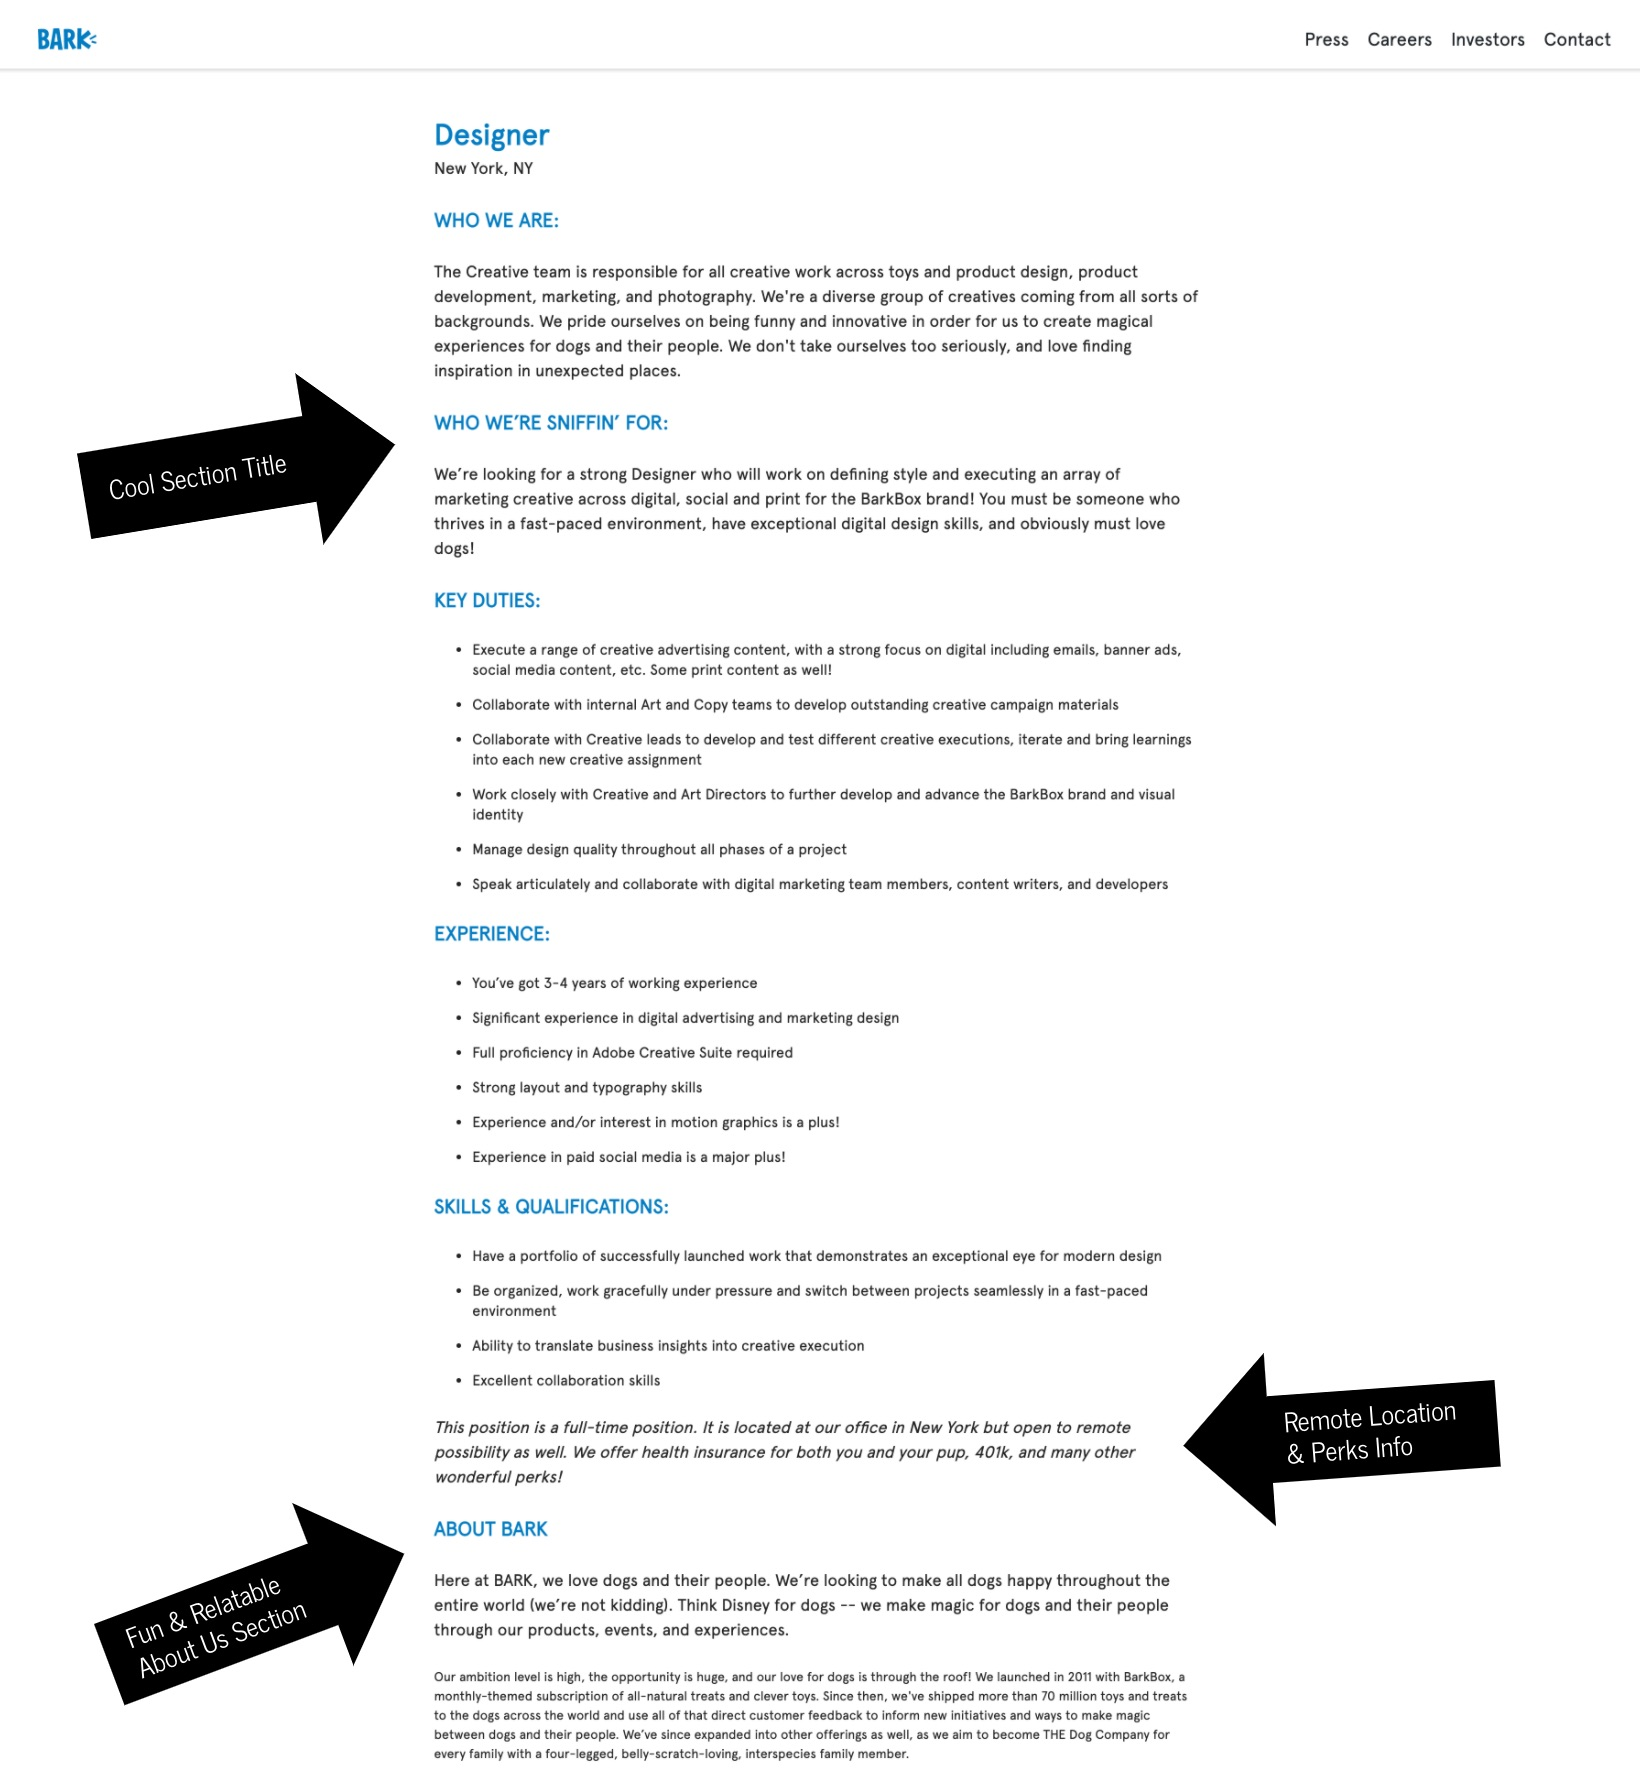 How to write a job description template bark | Ongig